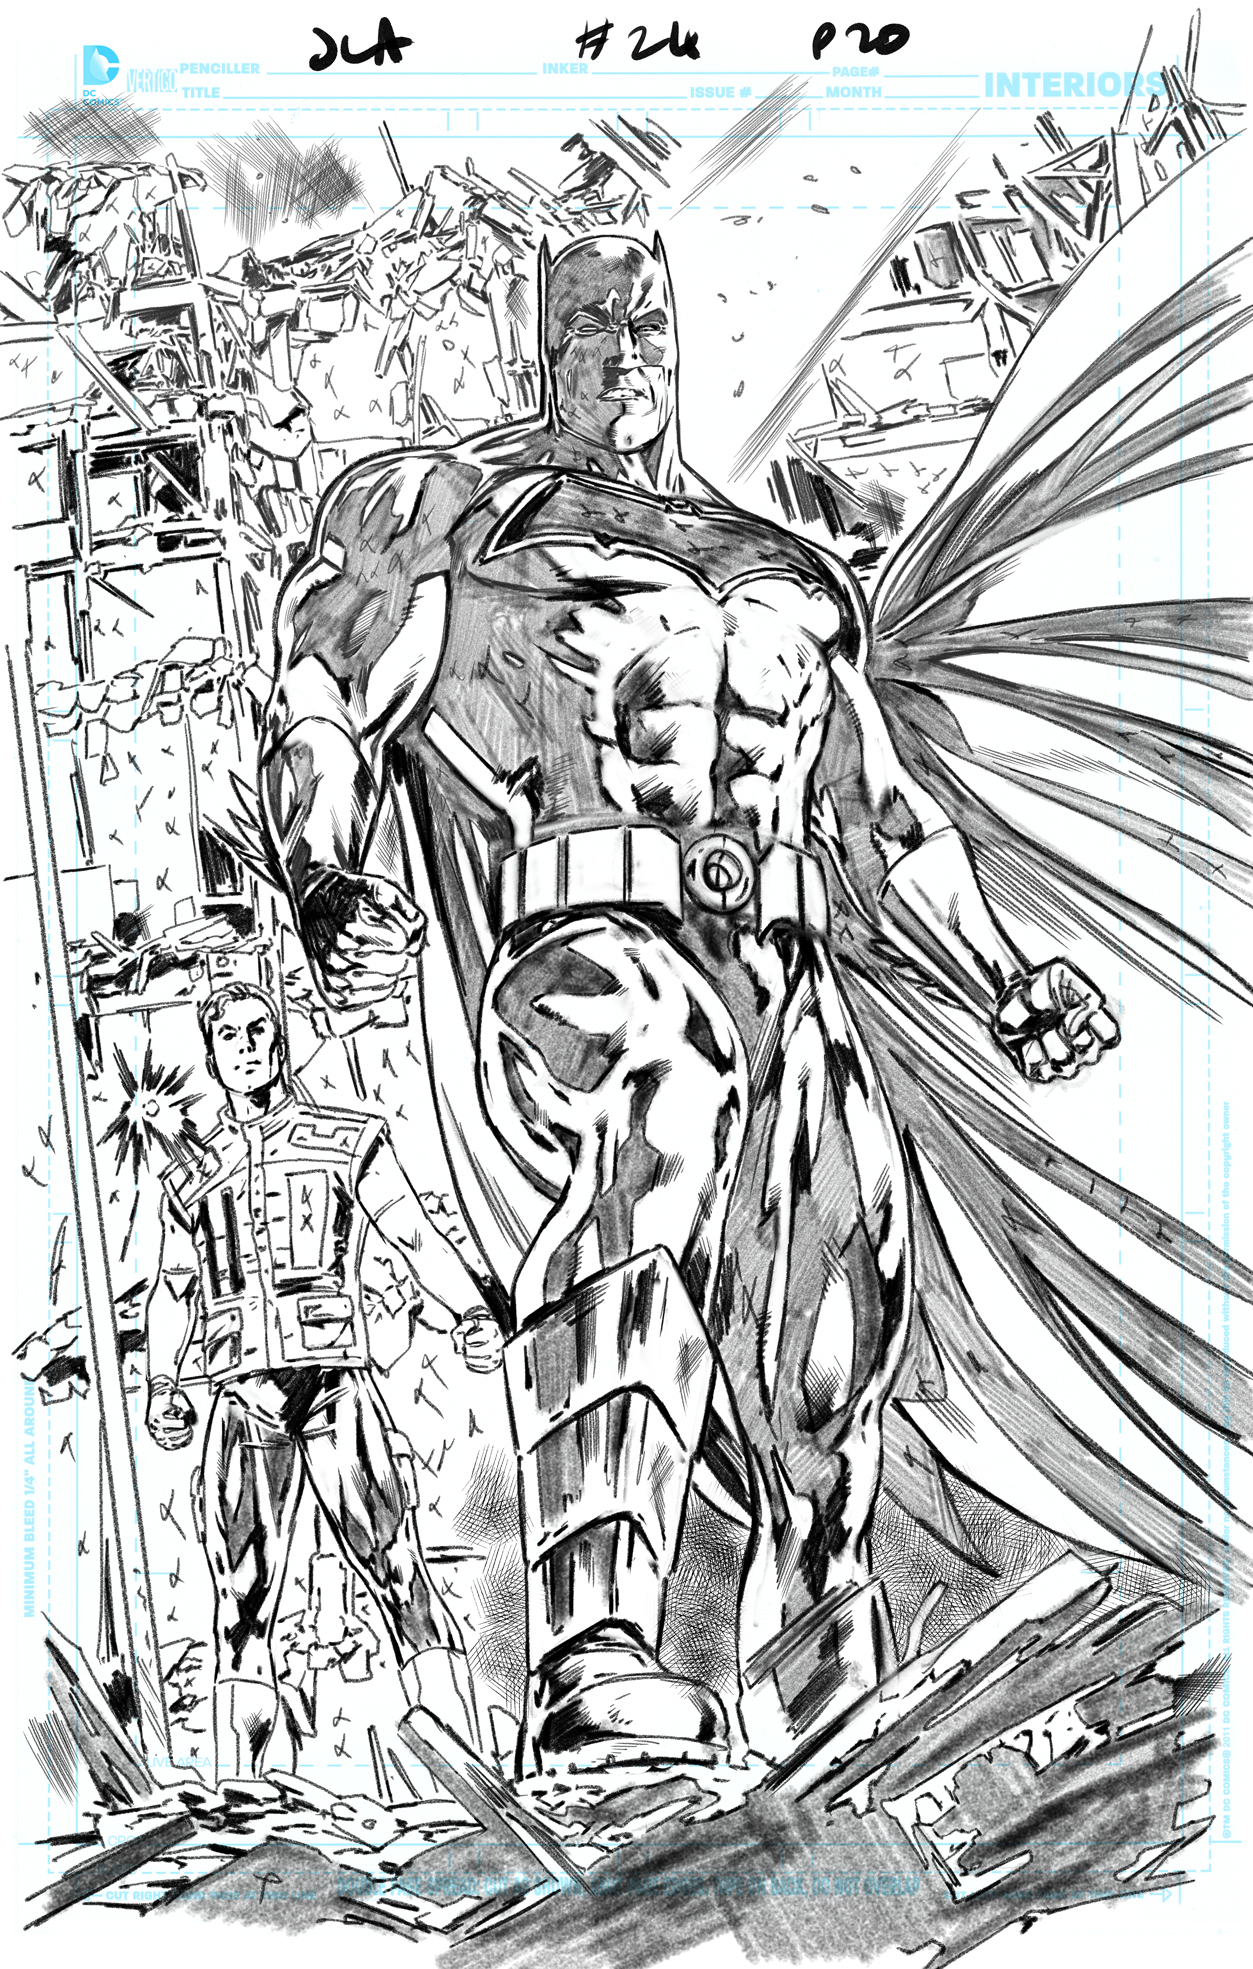 JLA_24_pencils 20a amended.jpg